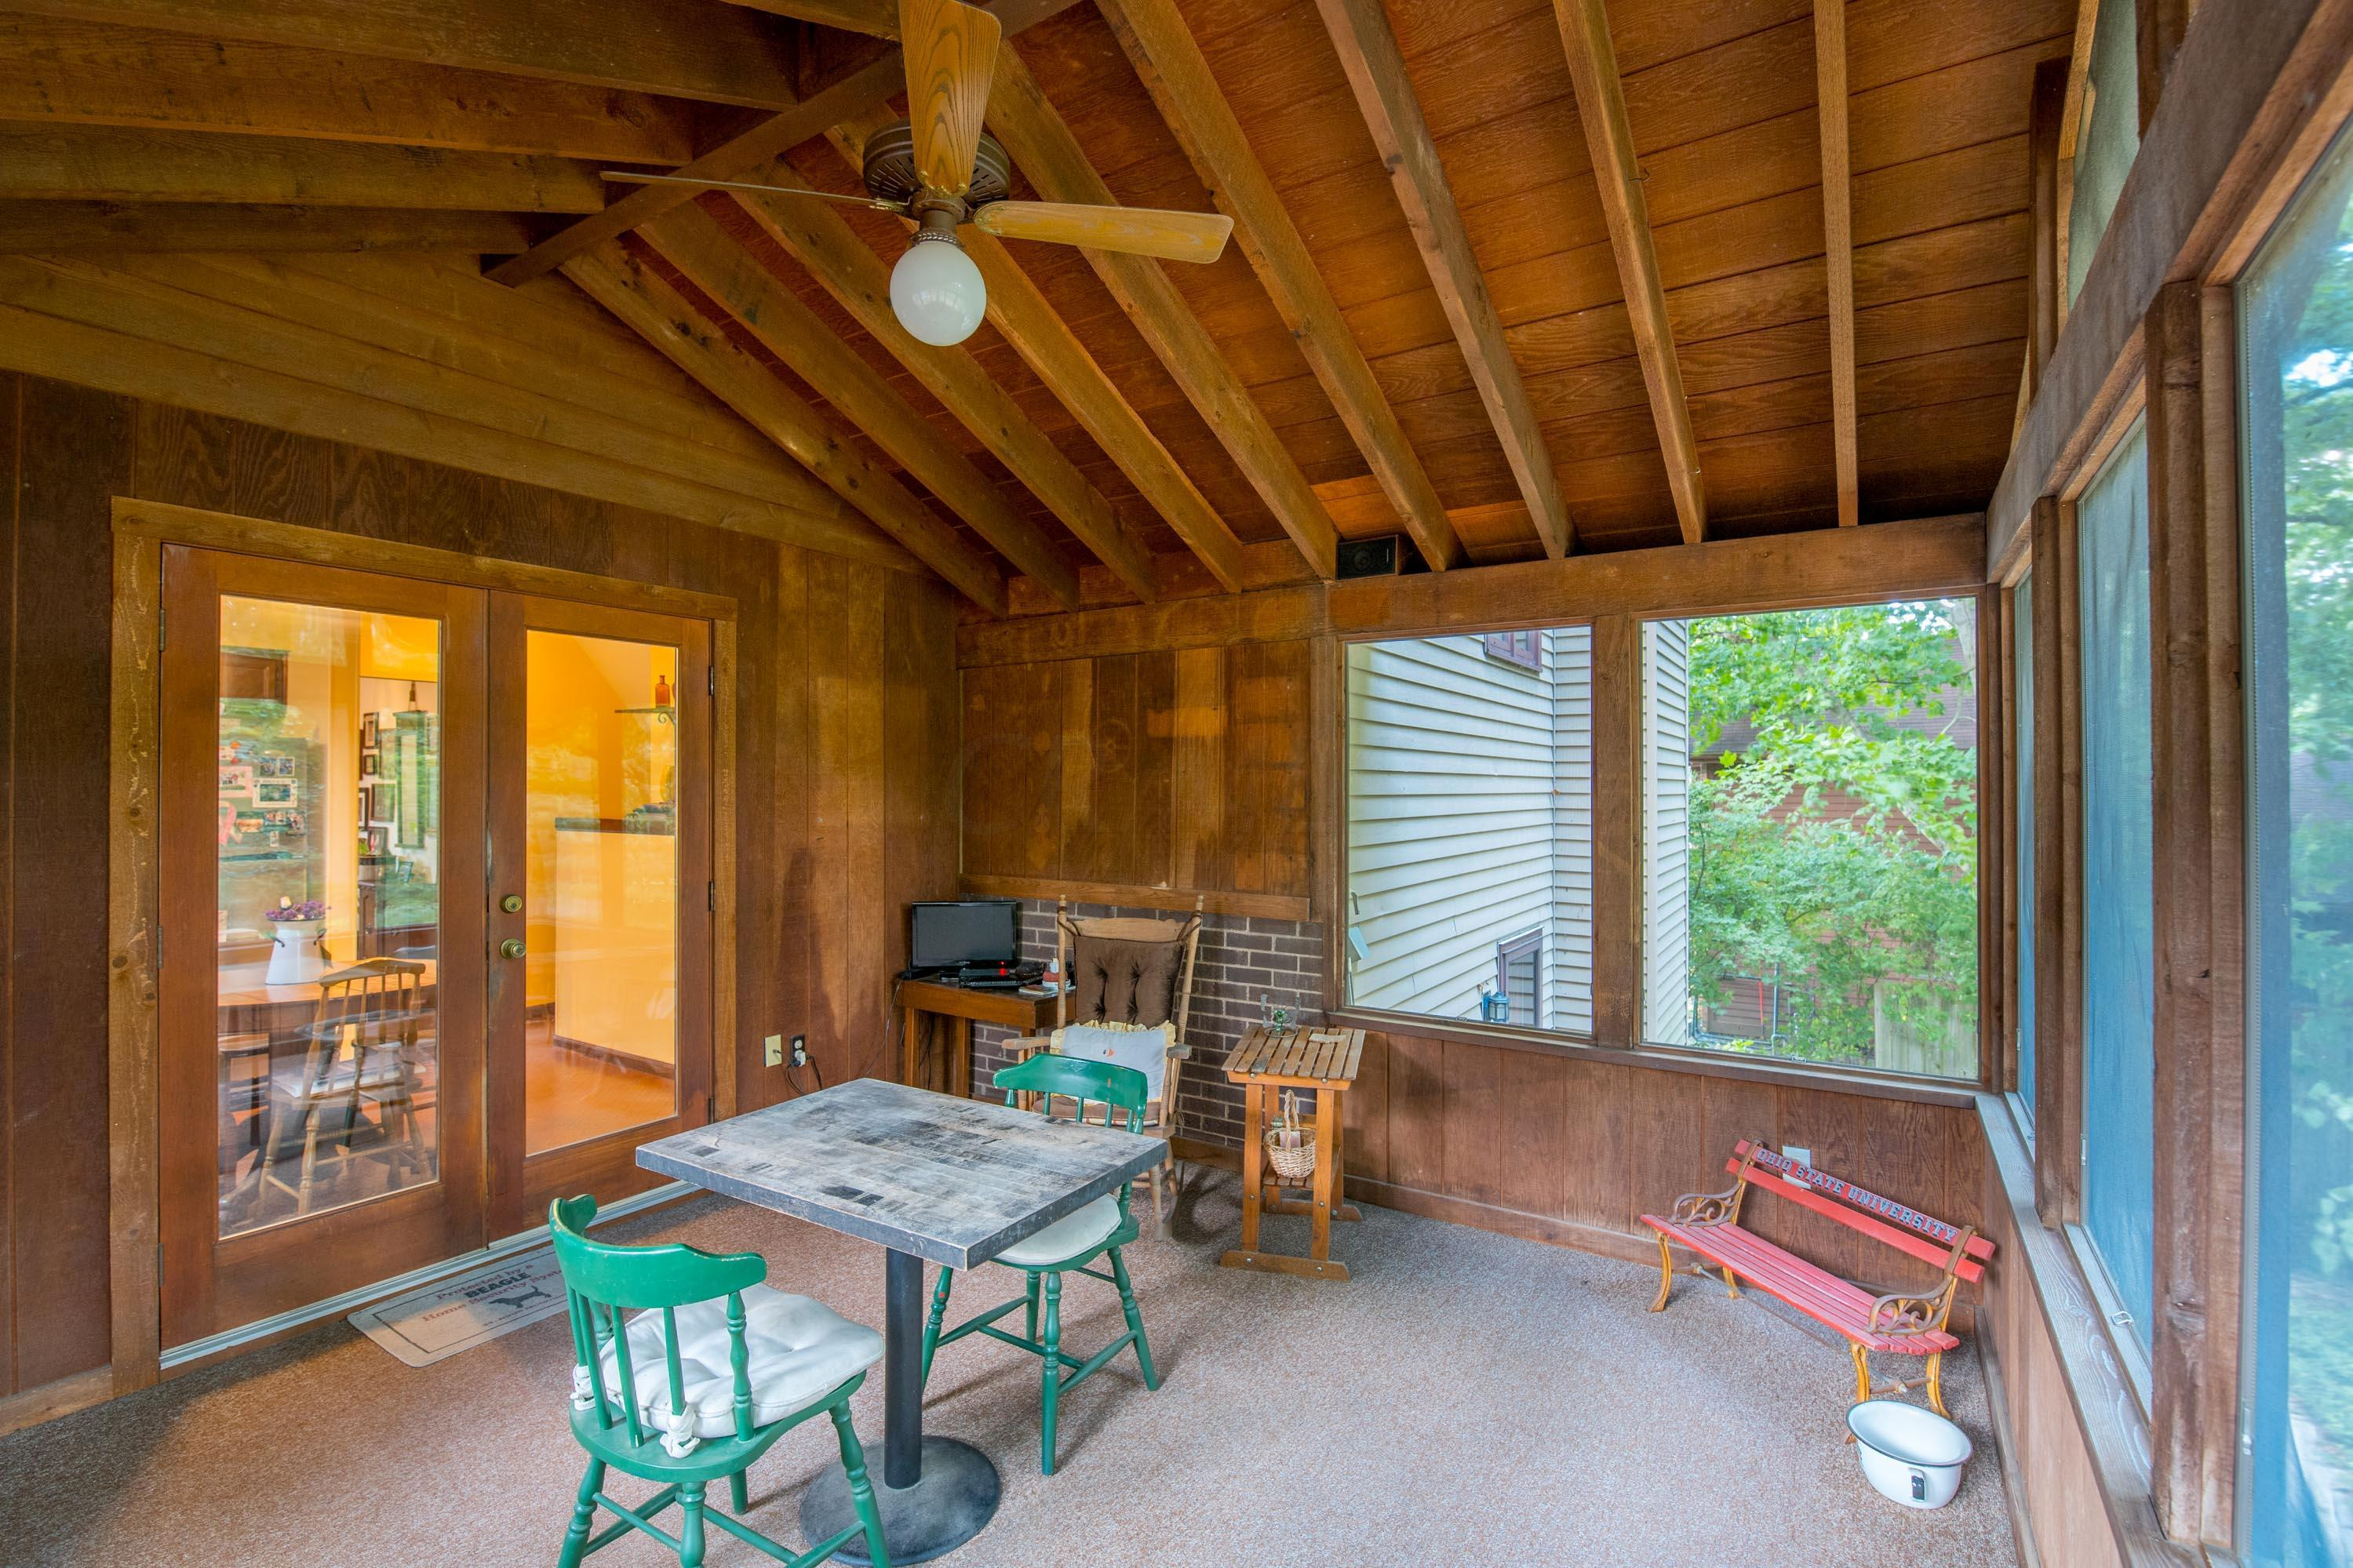 2774 Clifton Road, Upper Arlington, Ohio 43221, 4 Bedrooms Bedrooms, ,3 BathroomsBathrooms,Residential,For Sale,Clifton,220025123